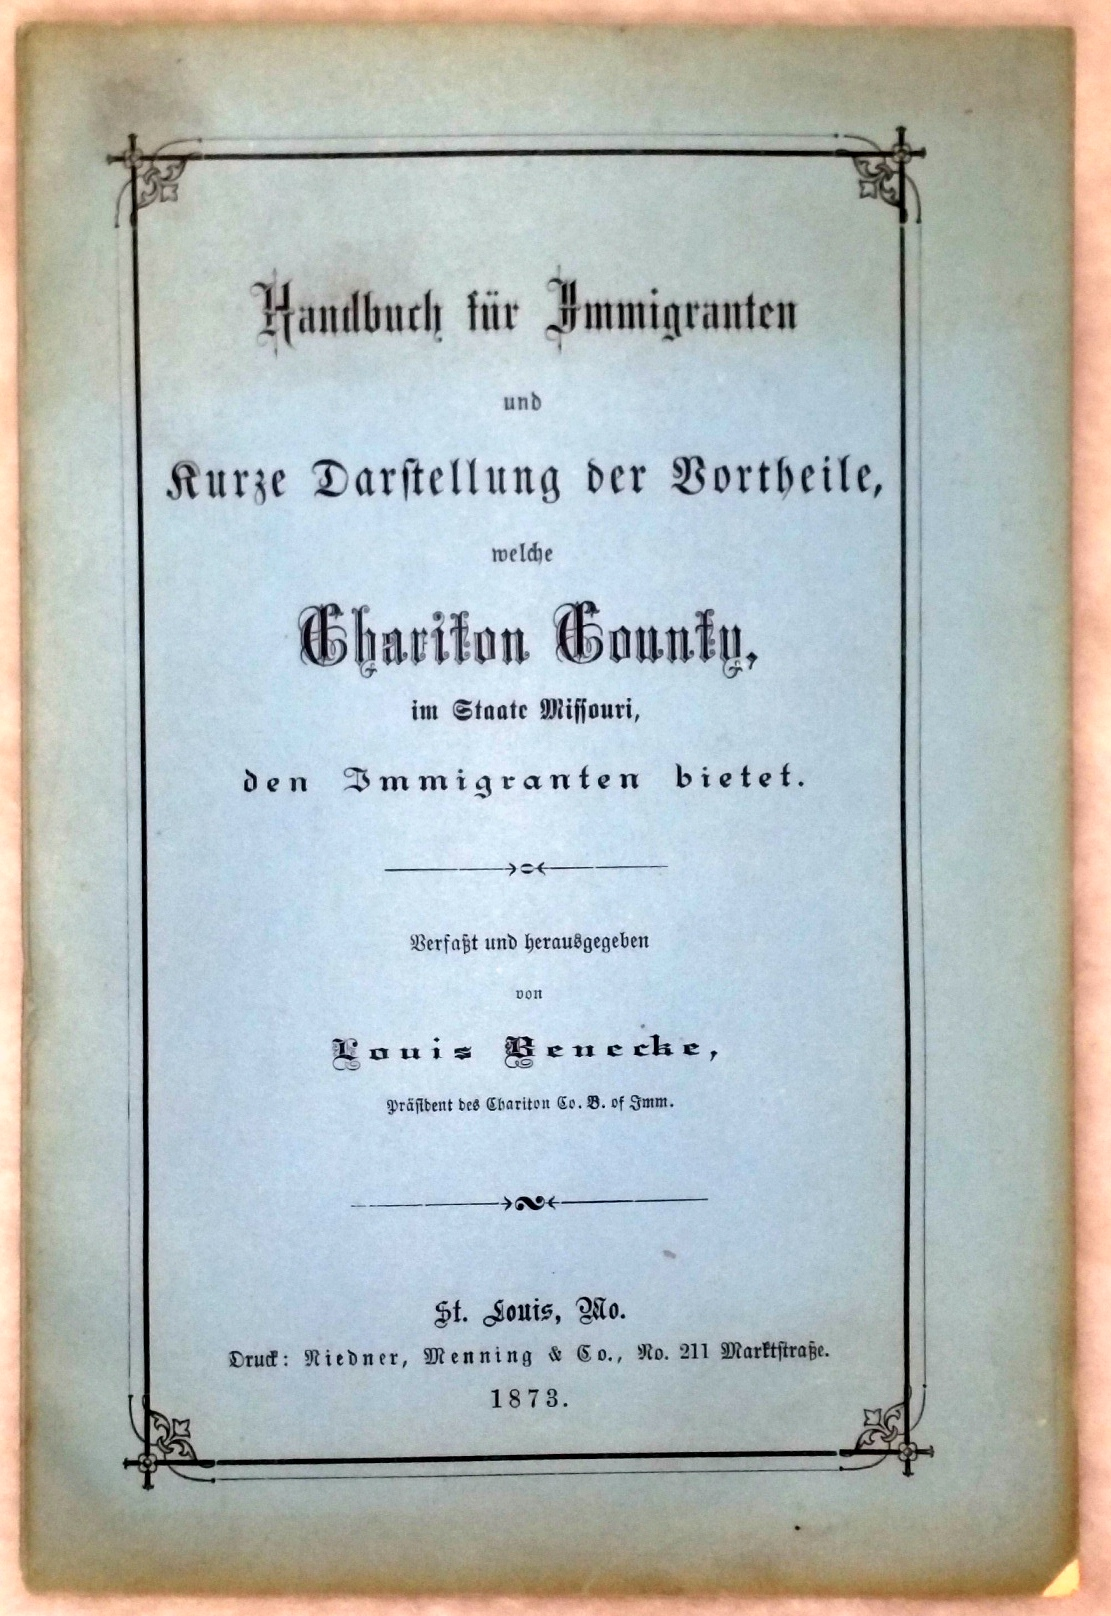 Image for Handbuch Fur Immigranten Und Kurze Darstellung Der Vortheile, Welche Chariton County, Im Staate Missouri, Den Immigranten Bietet